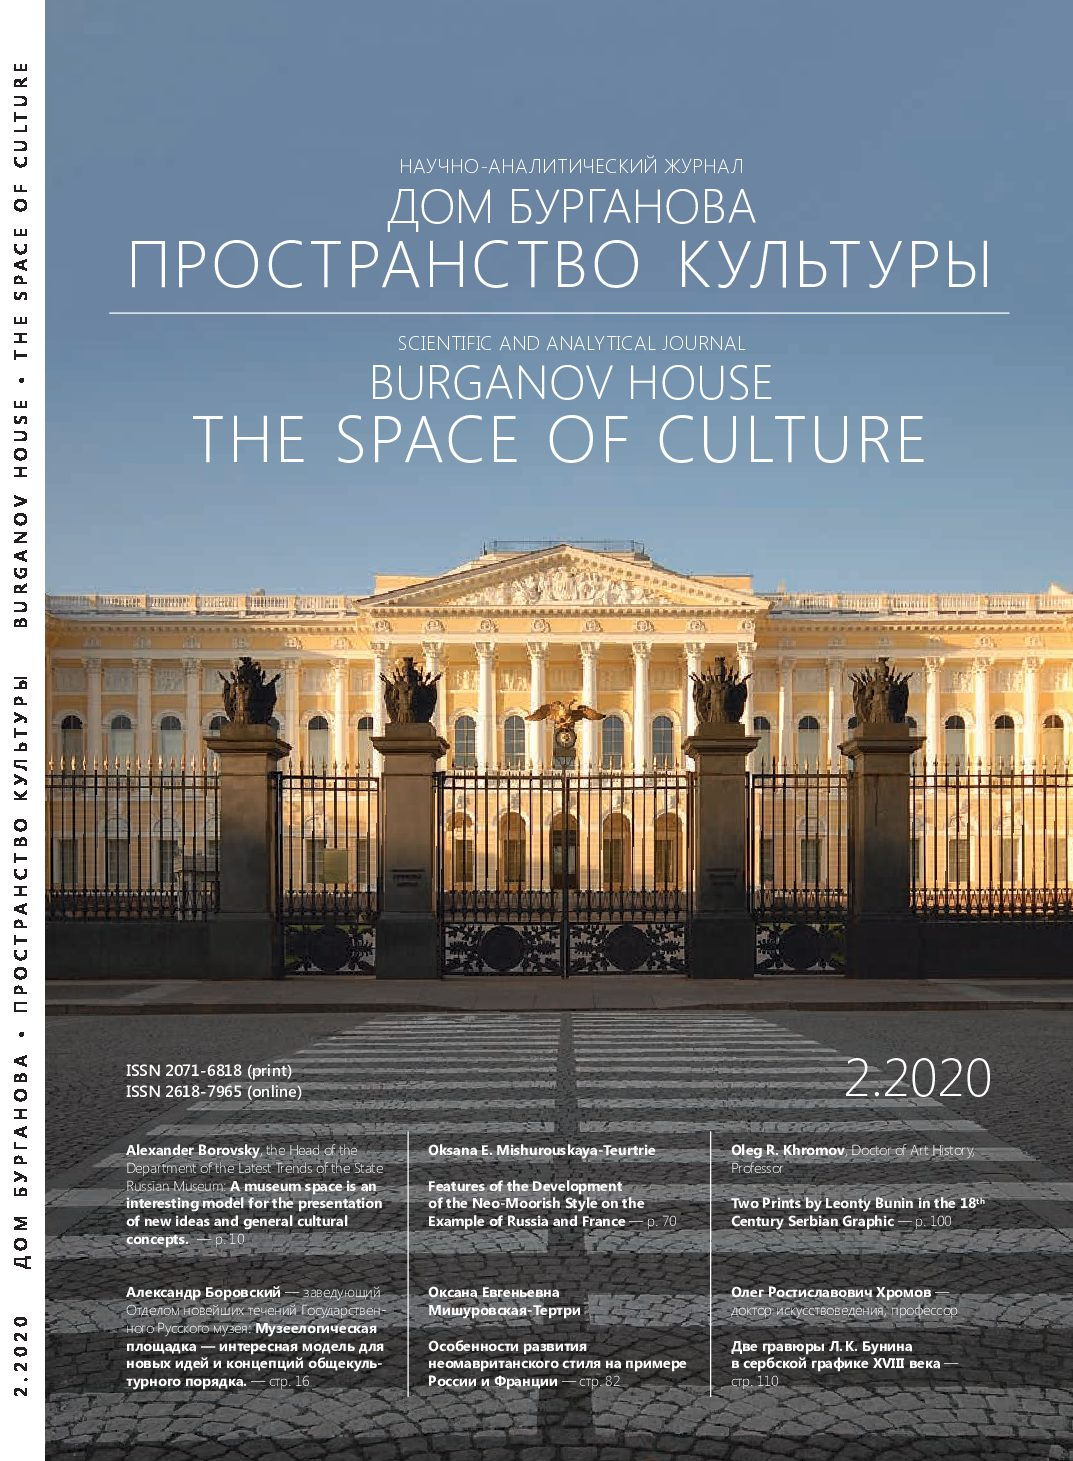 Journal Burganov House. The Space of Culture. 2.2020